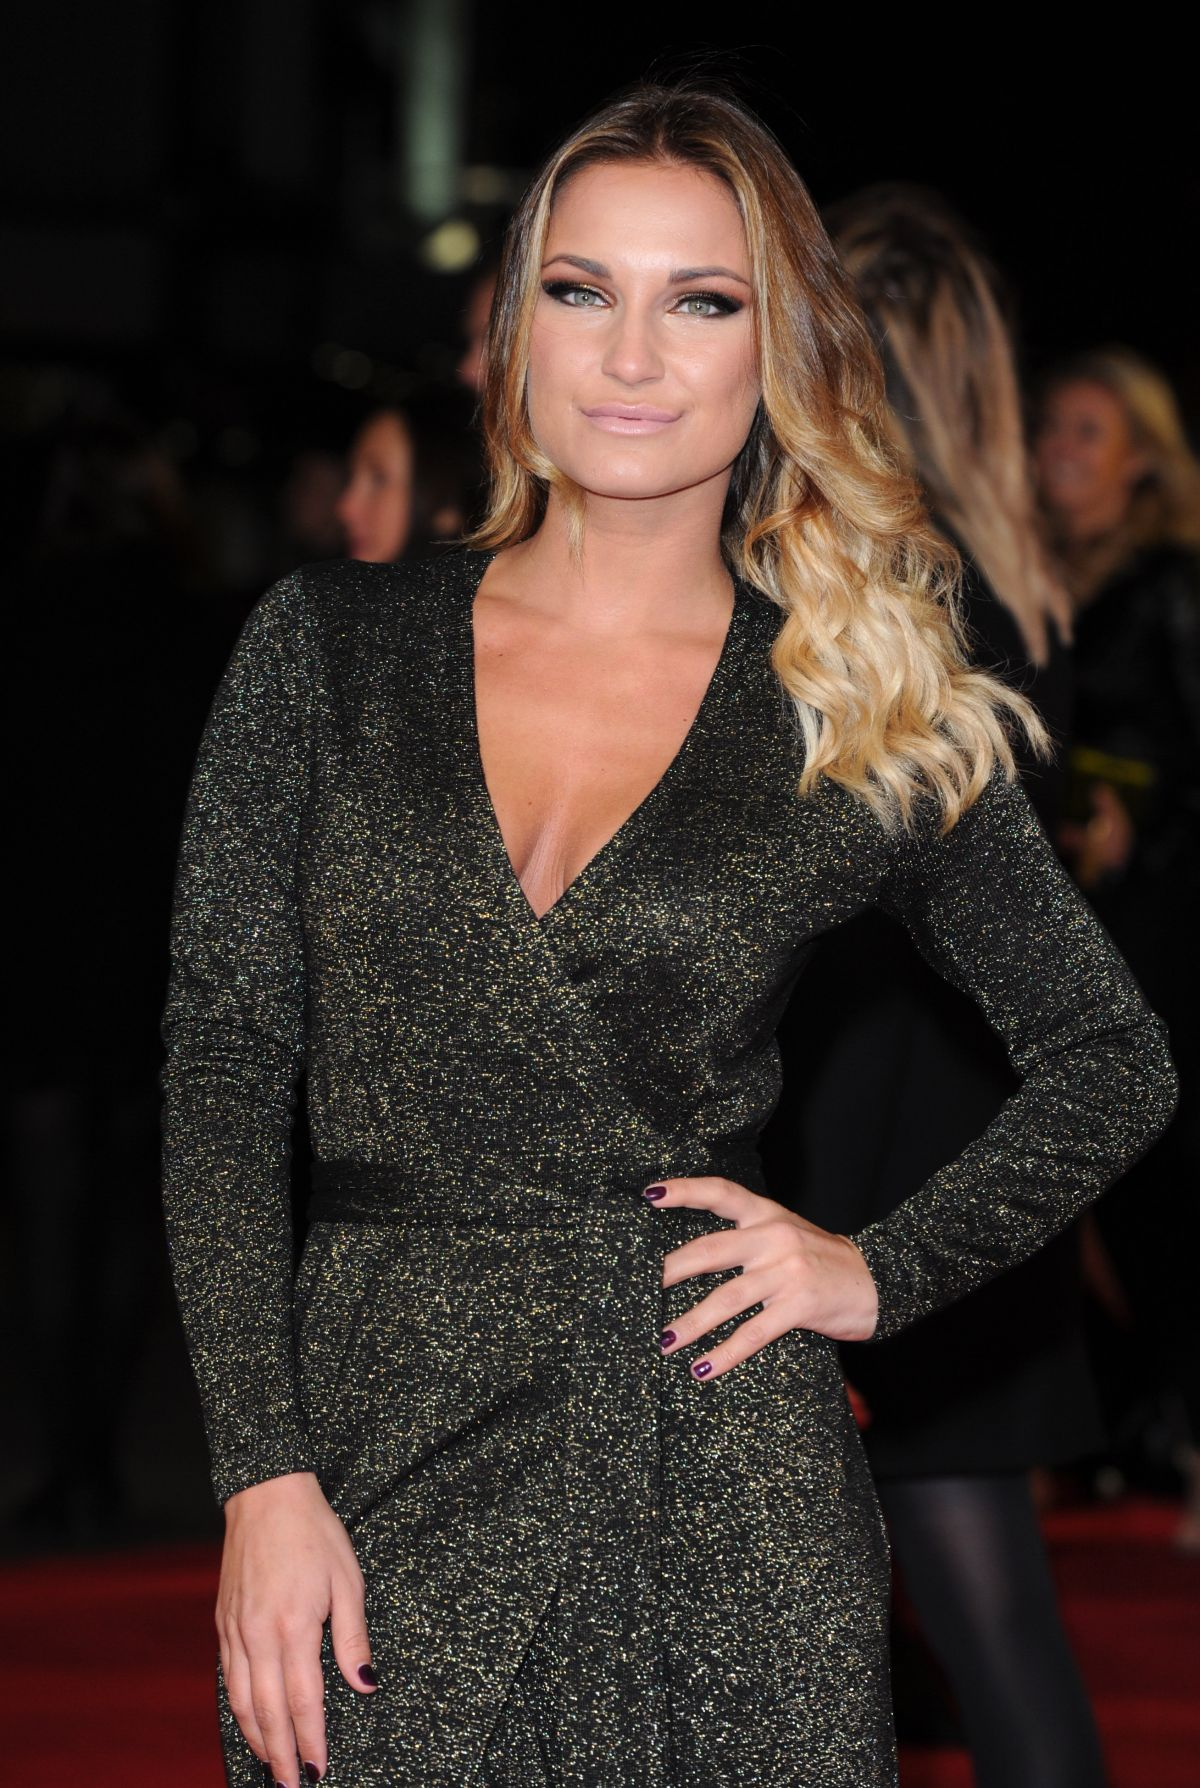 SAM FAIERS at The Hunger Games: Mockingjay Part 1 Premiere in London